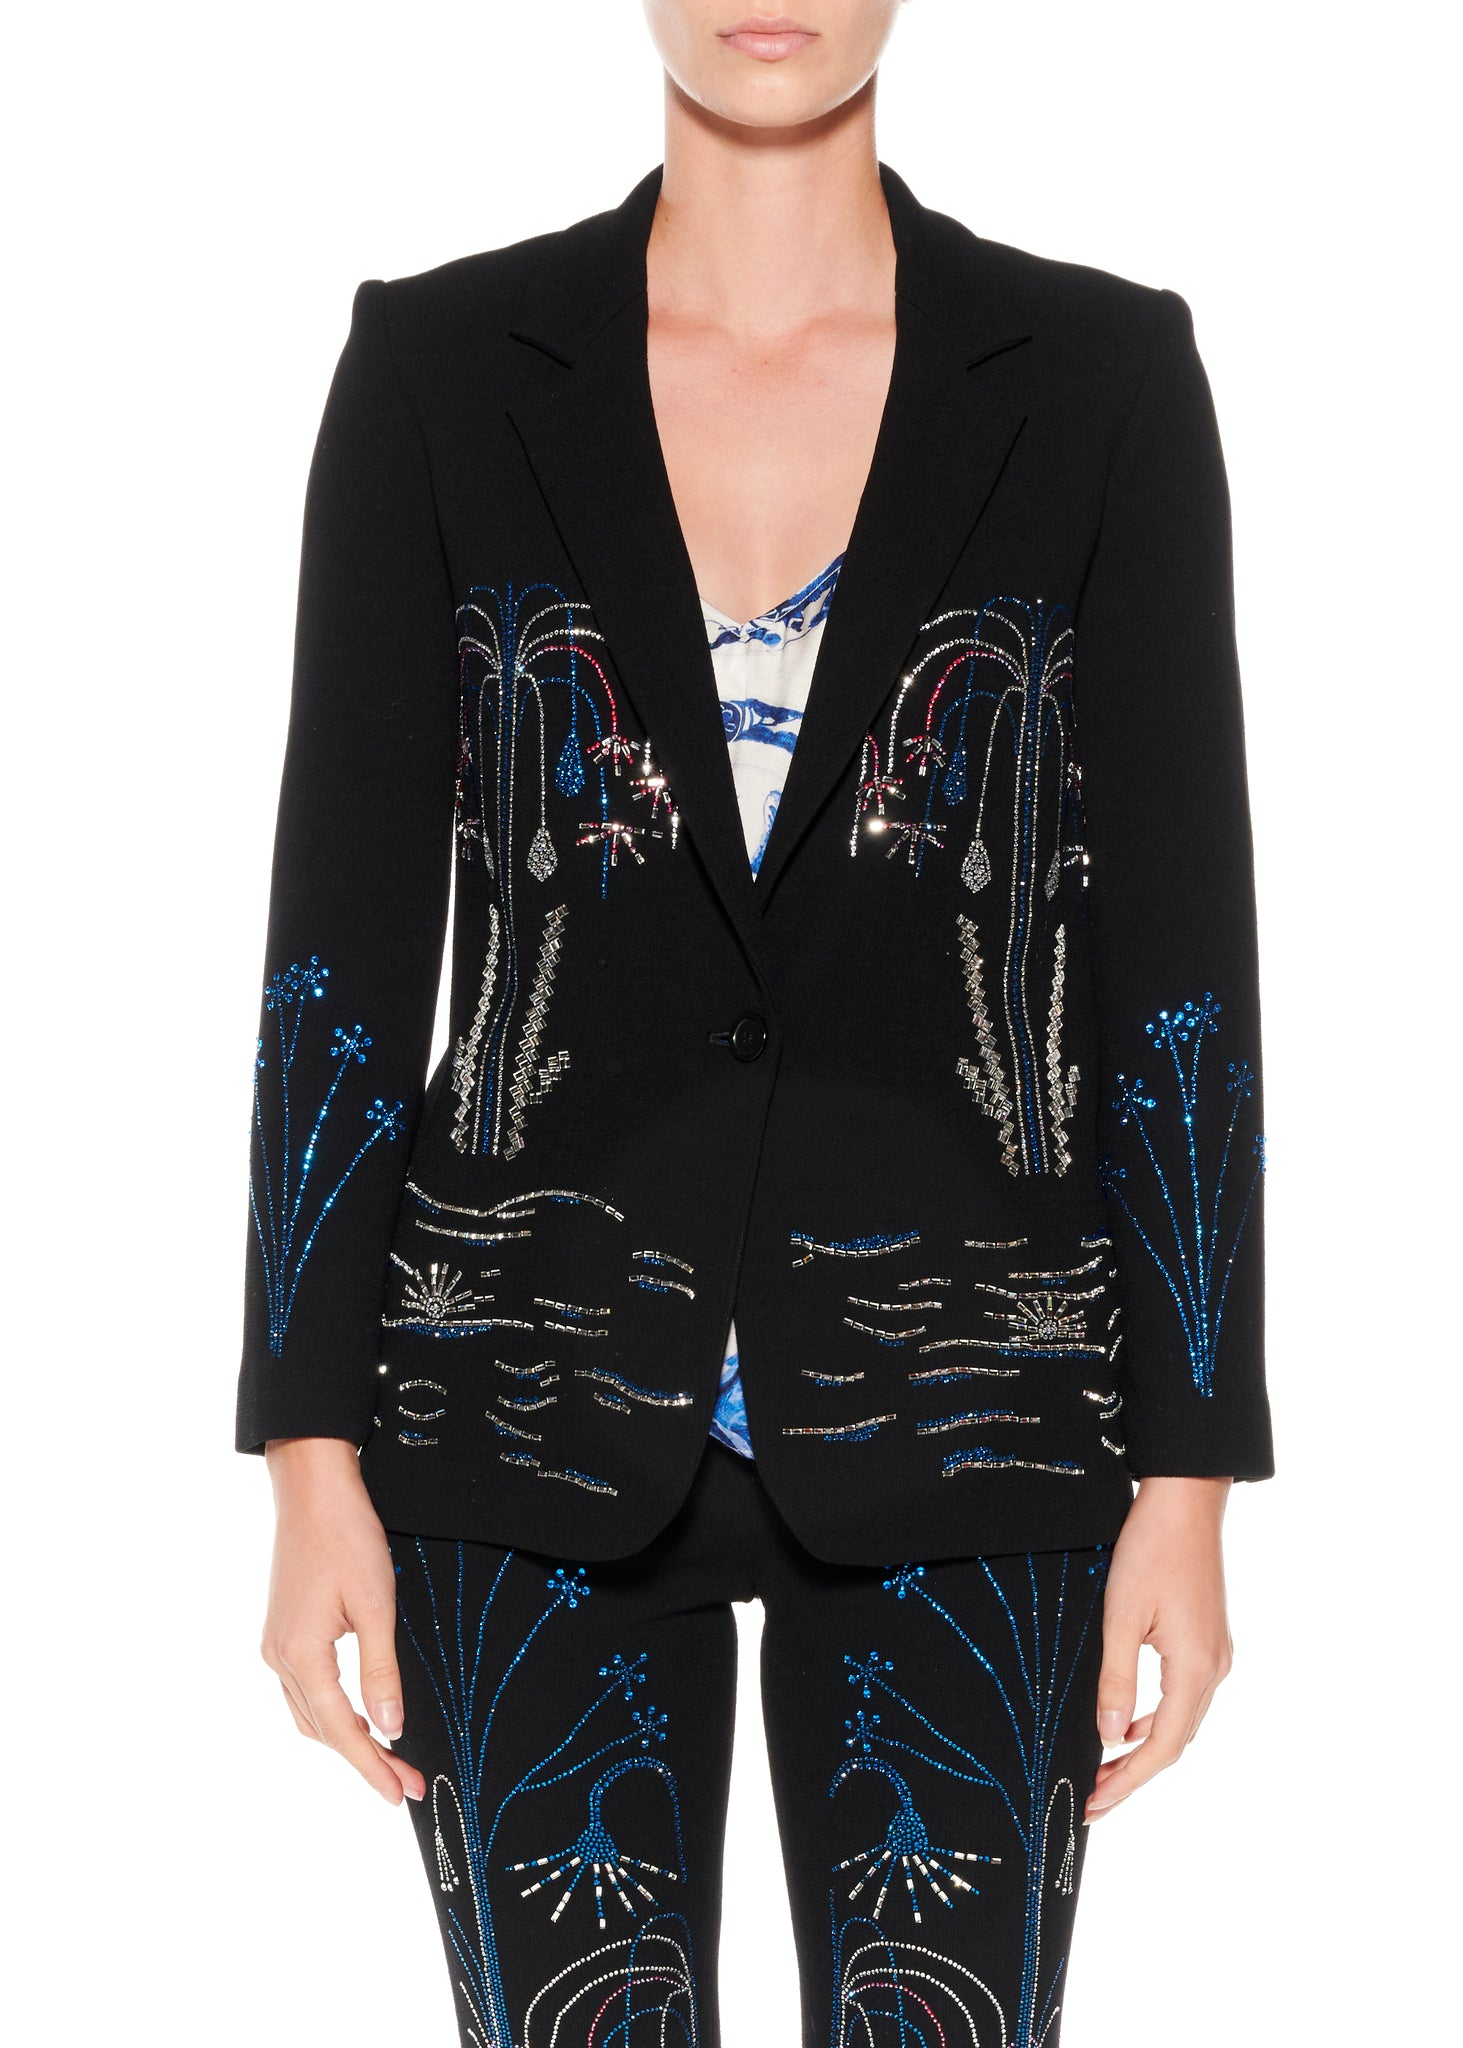 """PARIS FOUNTAIN"" LONG BLAZER - Women's Jackets & Coats - Libertine"